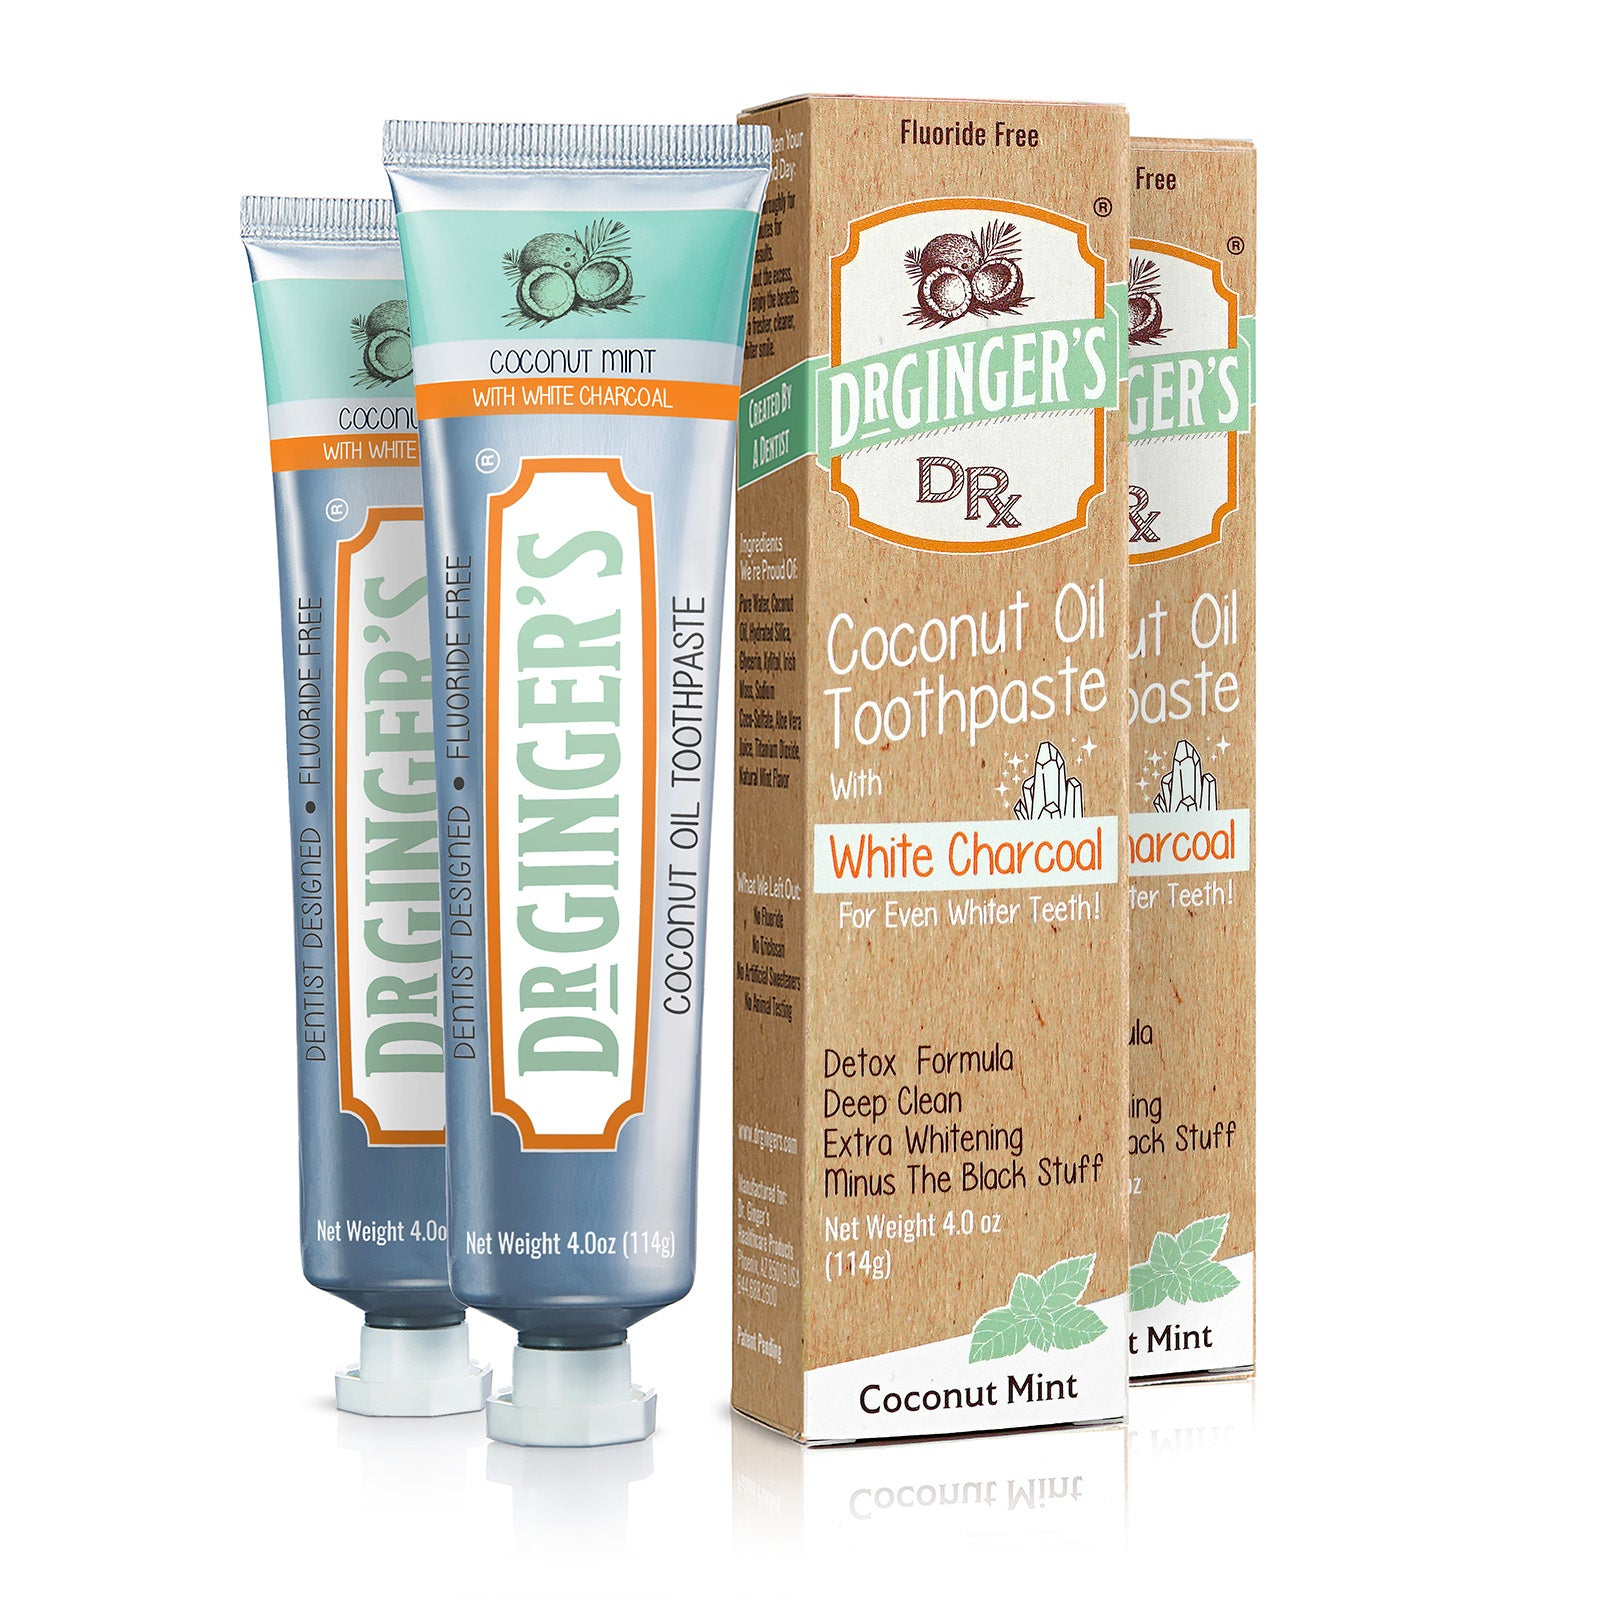 Dr. Ginger's White Charcoal Toothpaste, Two Tubes and Boxes